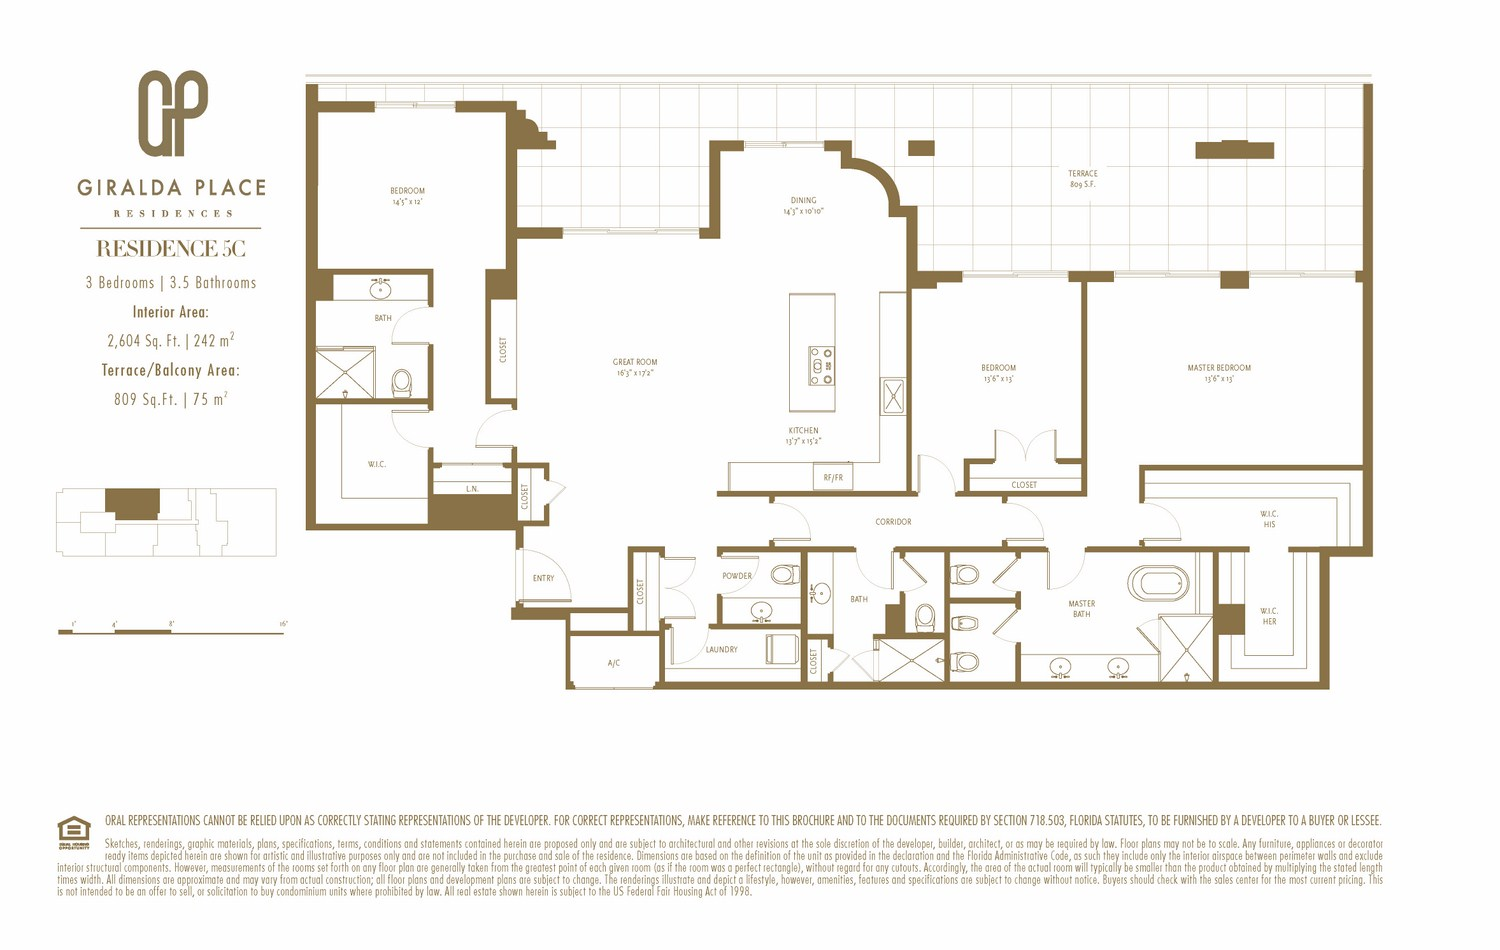 Giralda Place - Floorplan 9